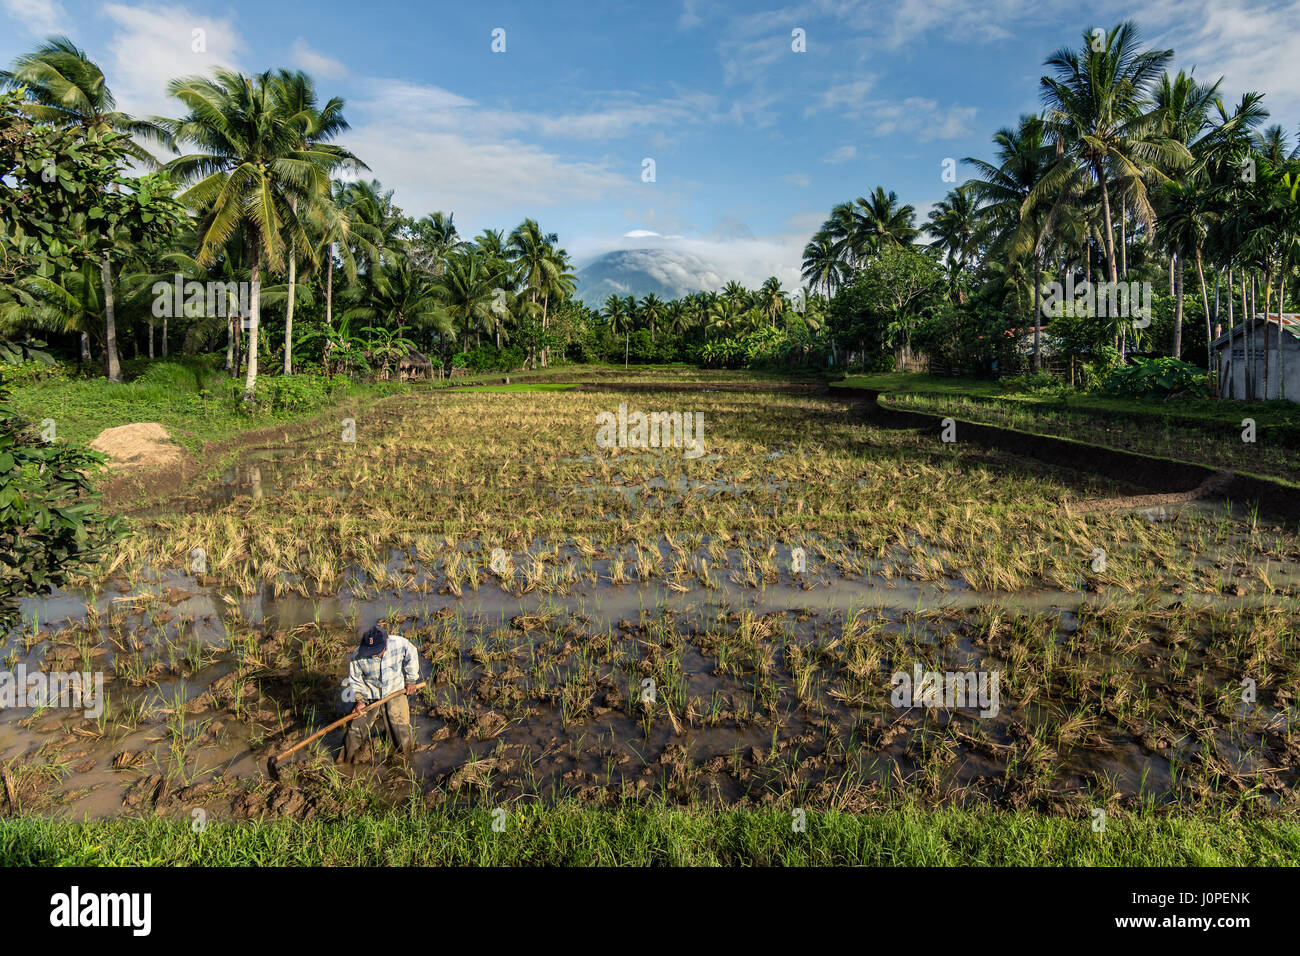 Farmer tending a large rice field in the shadow of a active volcano Mount Mayon, Philippines. - Stock Image